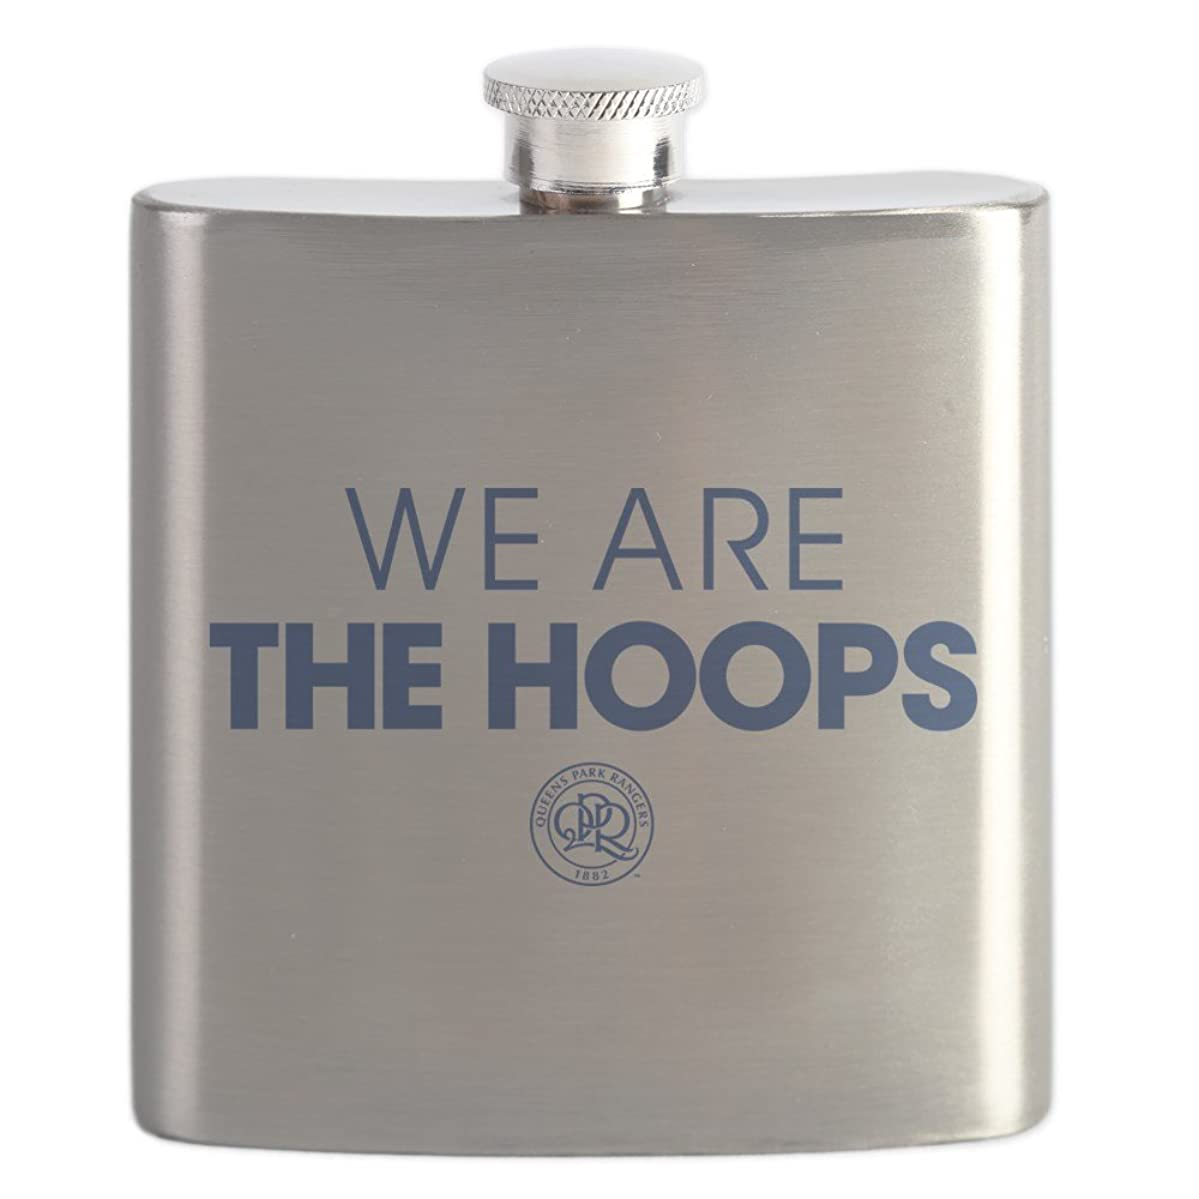 CafePress - Queens Park We Are The Hoops - Stainless Steel Flask, 6oz Drinking Flask